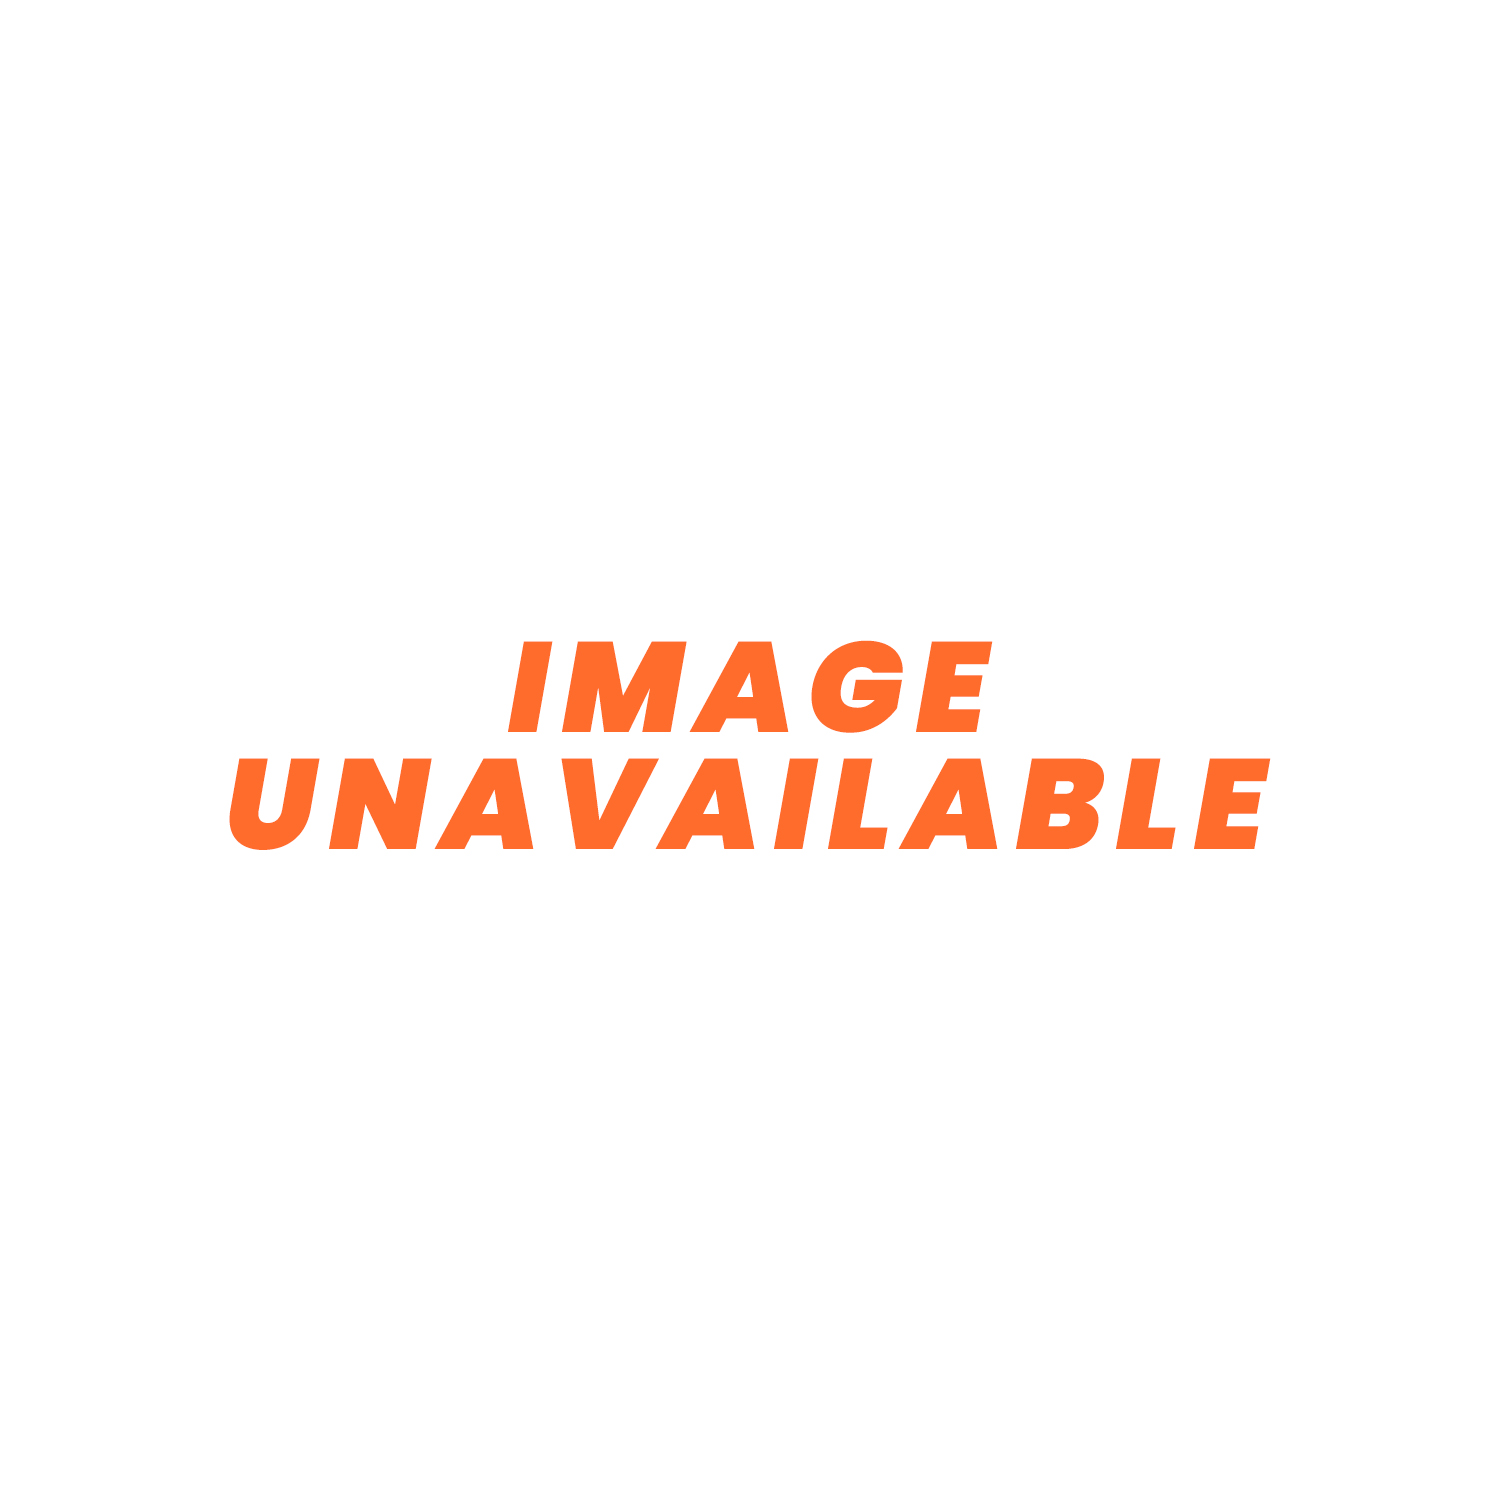 Air Vent Twist Swivel Base for demist and defrost disassembled